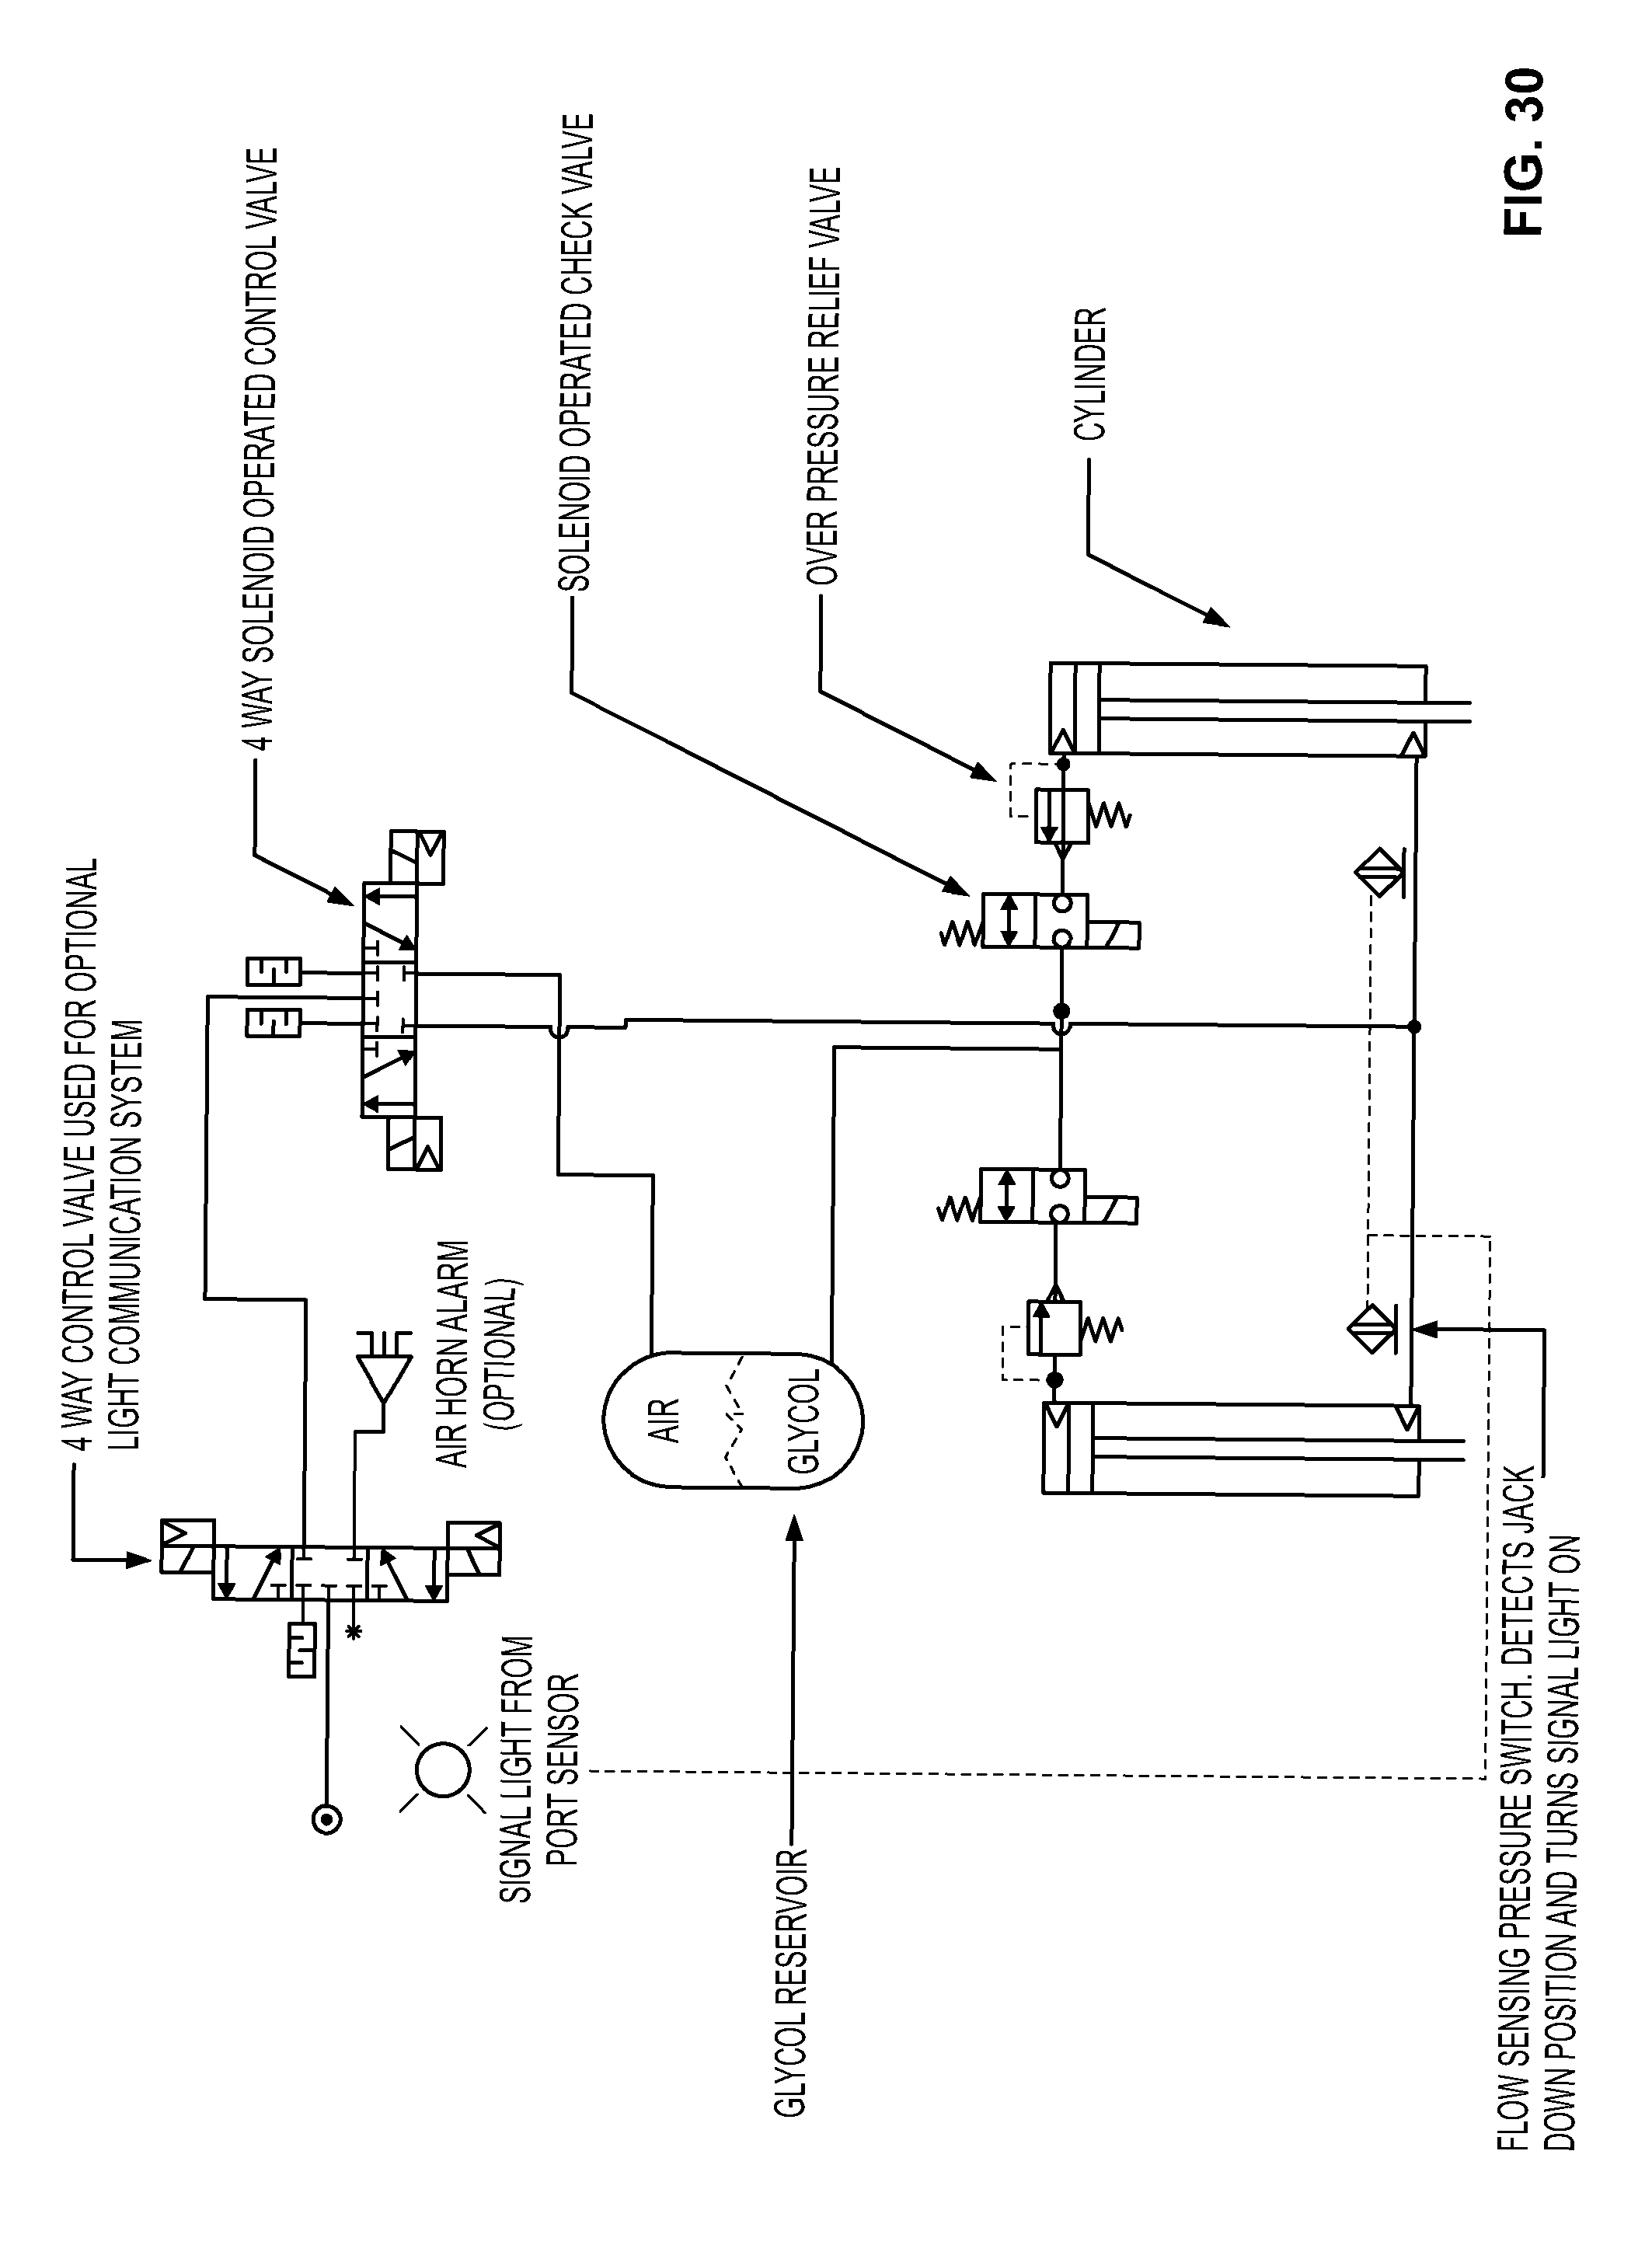 Wiring Diagram For Wilson Cattle Trailer : Wilson grain trailer wiring diagram gearbox